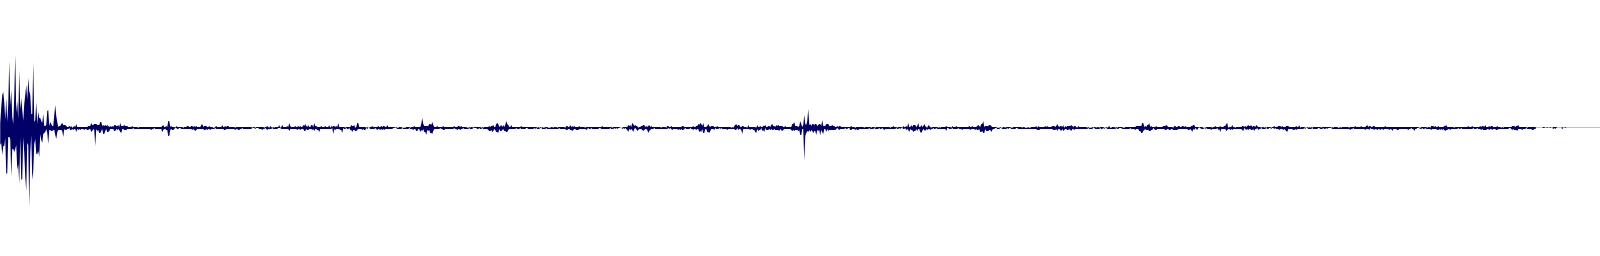 waveform of track #136096